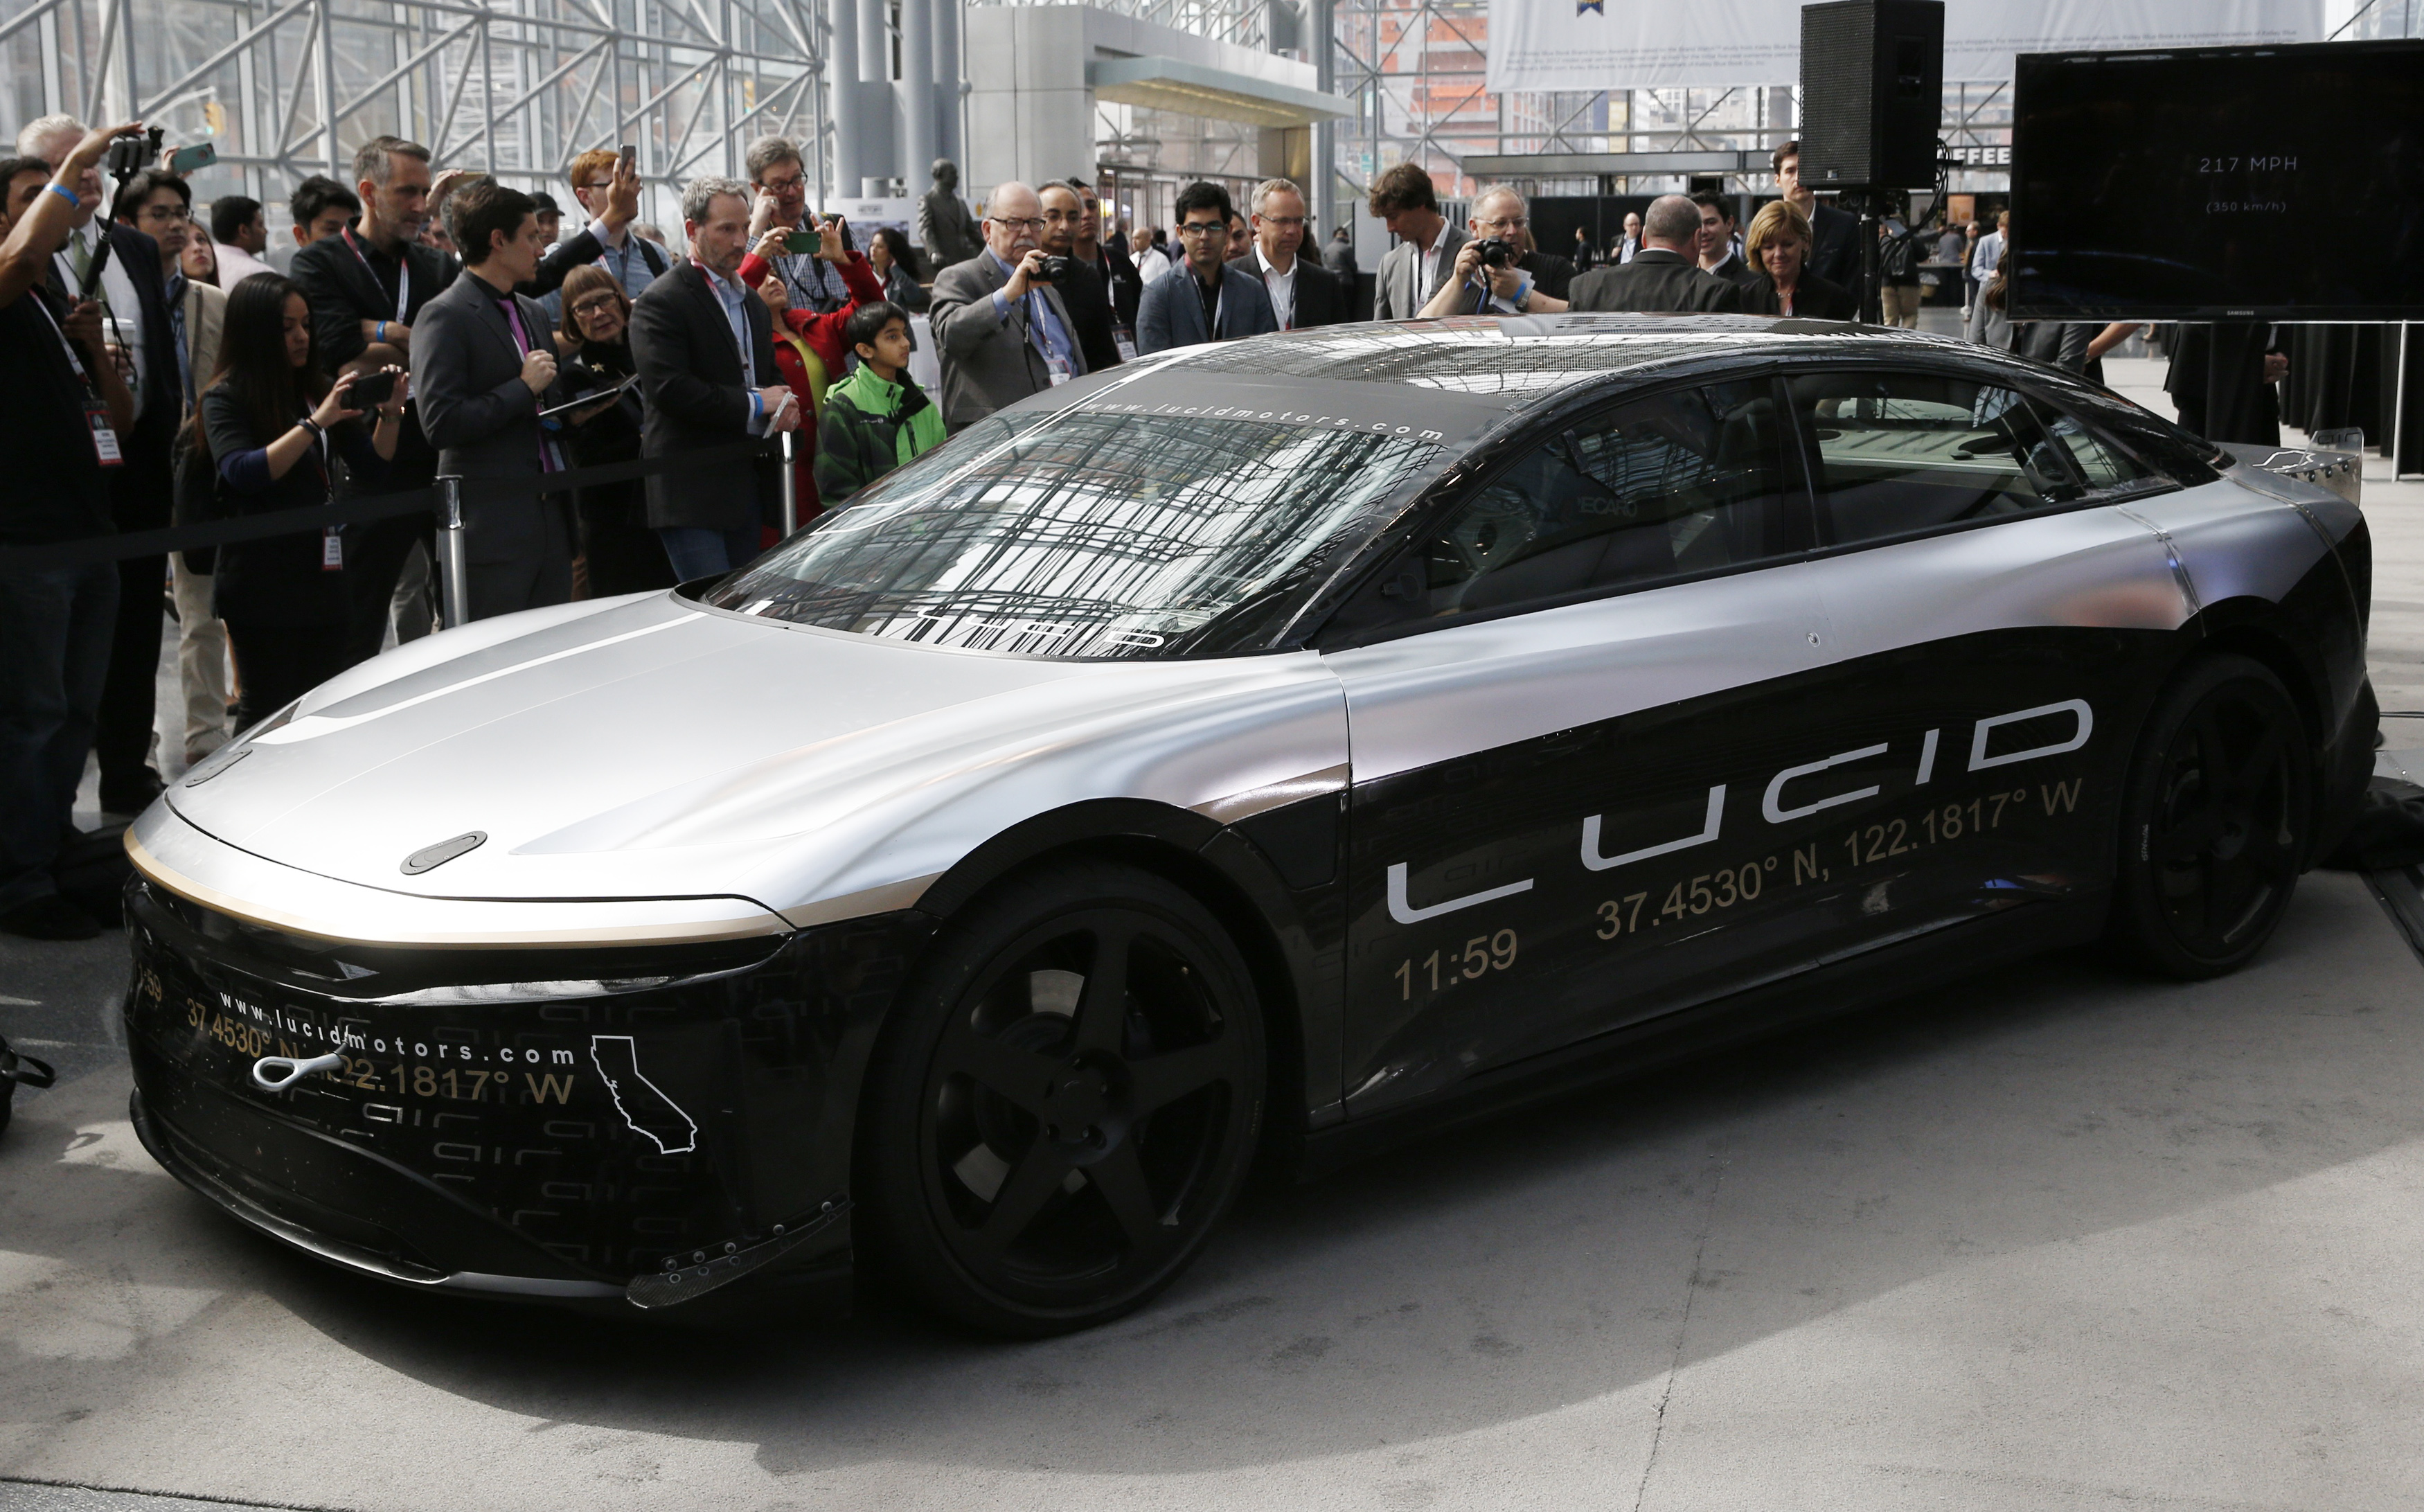 The Lucid Air speed test car is displayed at the 2017 New York International Auto Show in New York City, U.S. April 13, 2017. REUTERS/Andrew Kelly